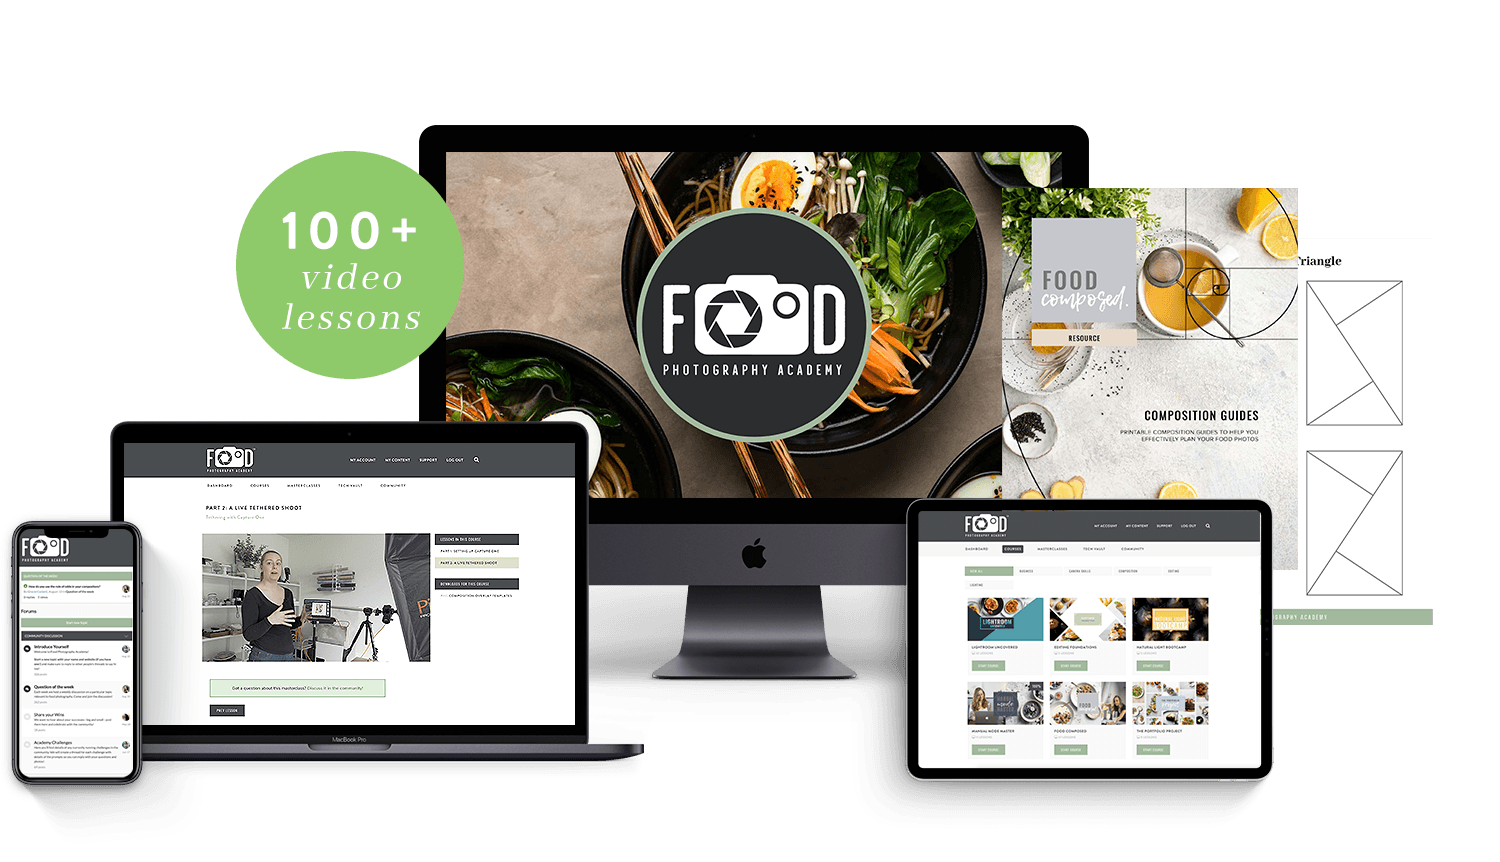 Introducing Food Photography Academy